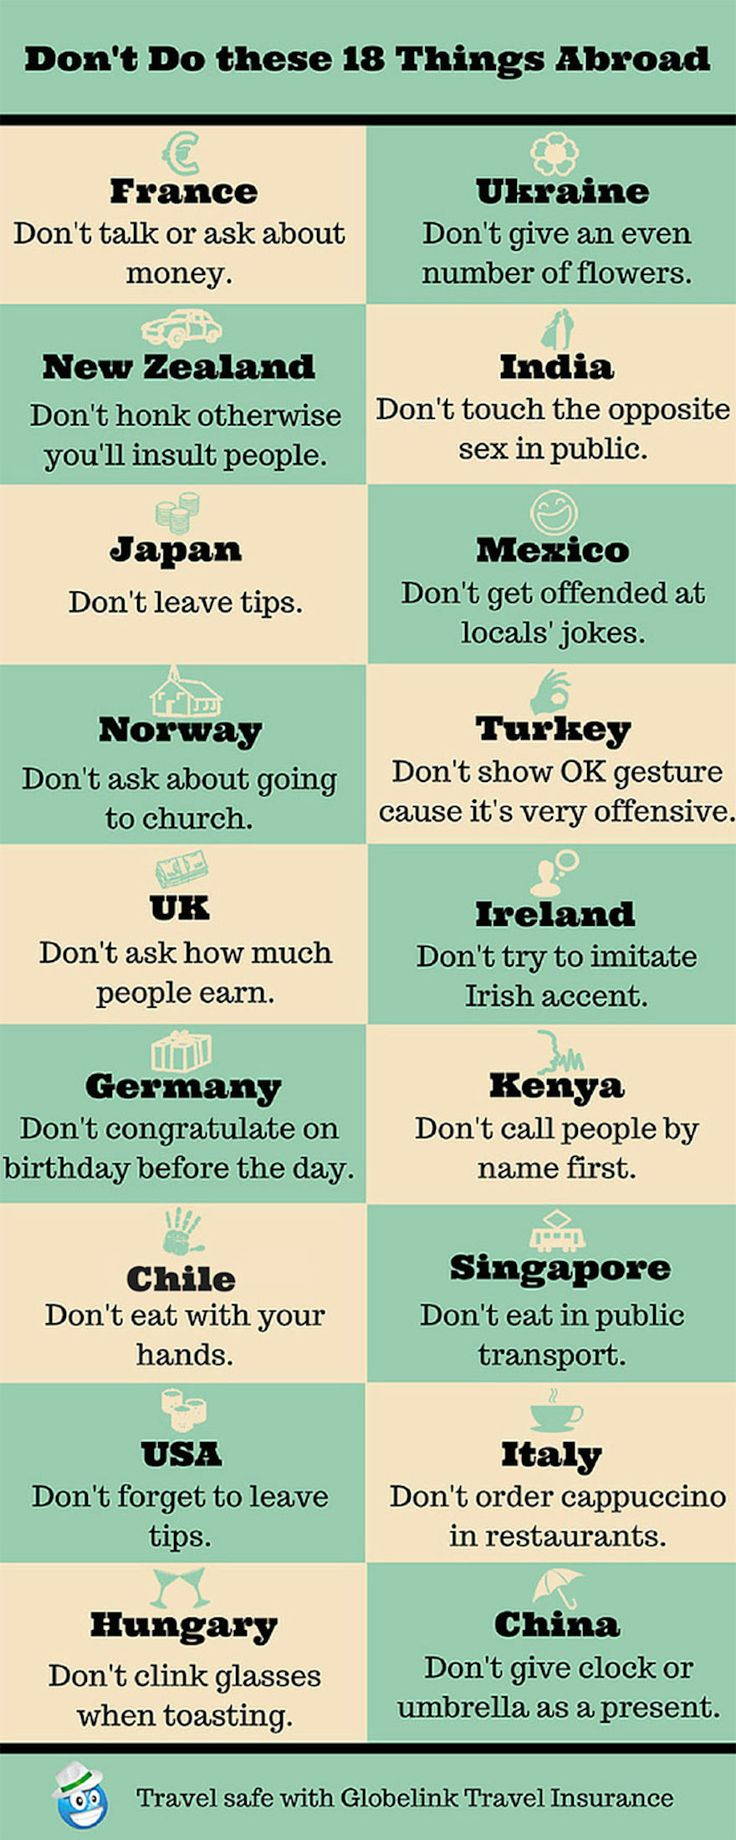 18 Things You Should Never Do Abroad… You've Been Warned